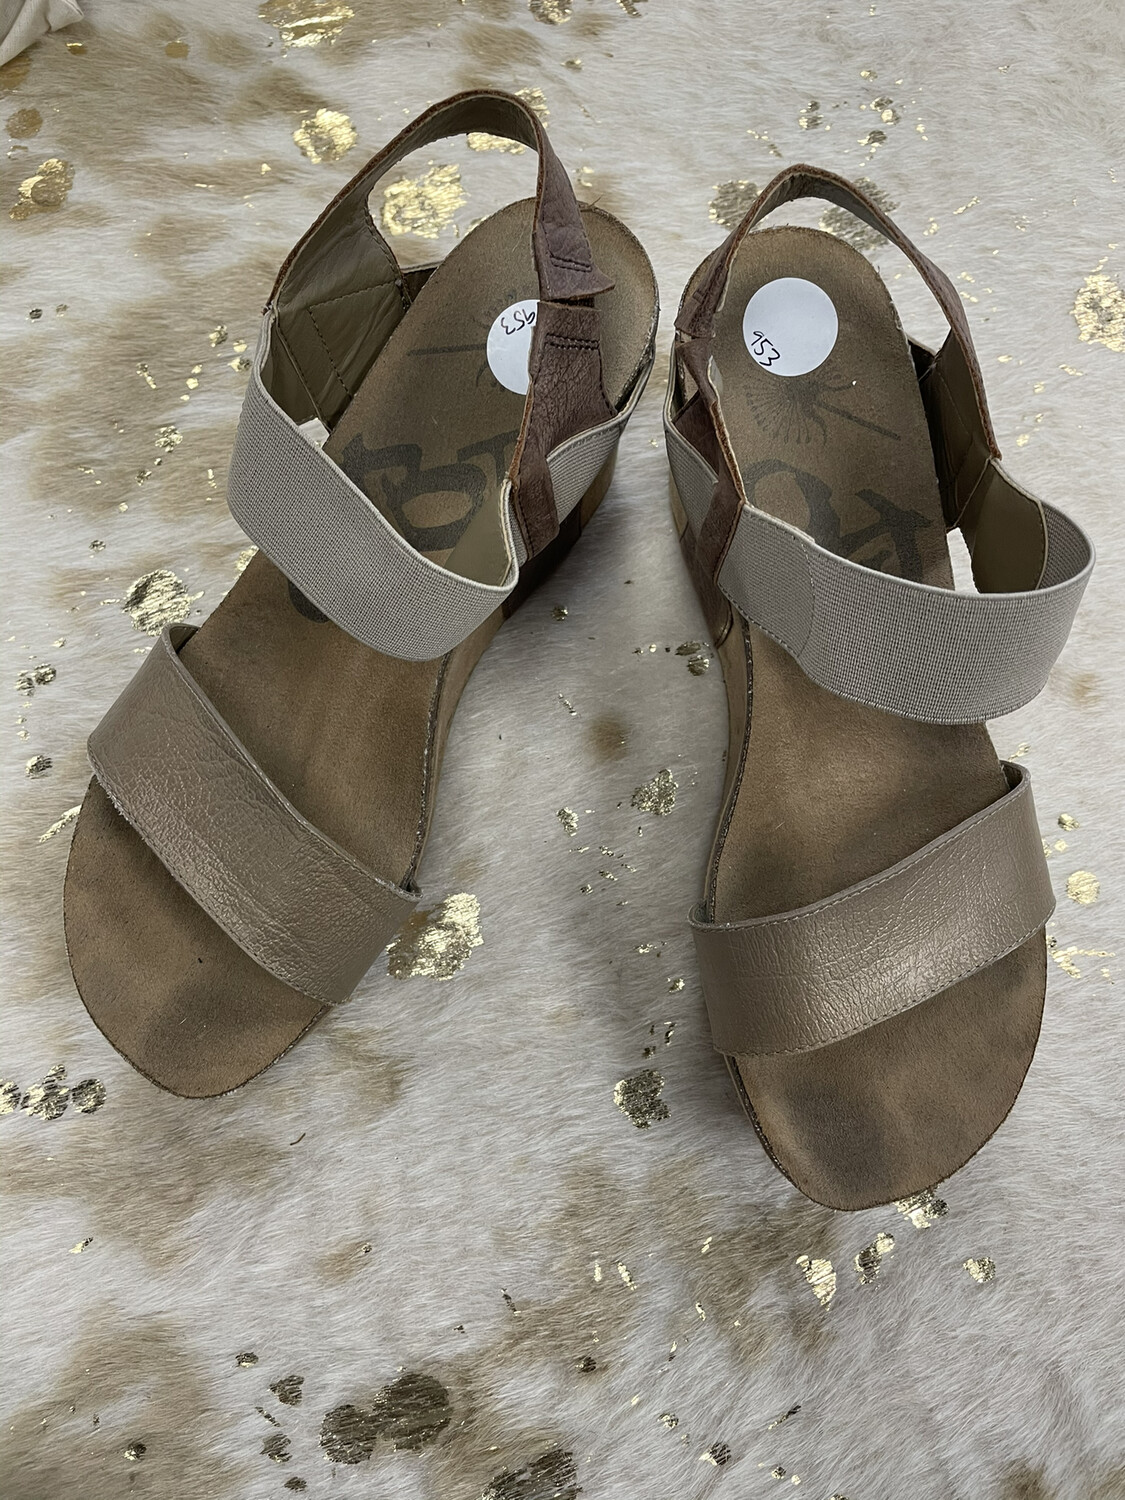 OTBT Tan Two Tone Wedge Sandals - Size 8.5